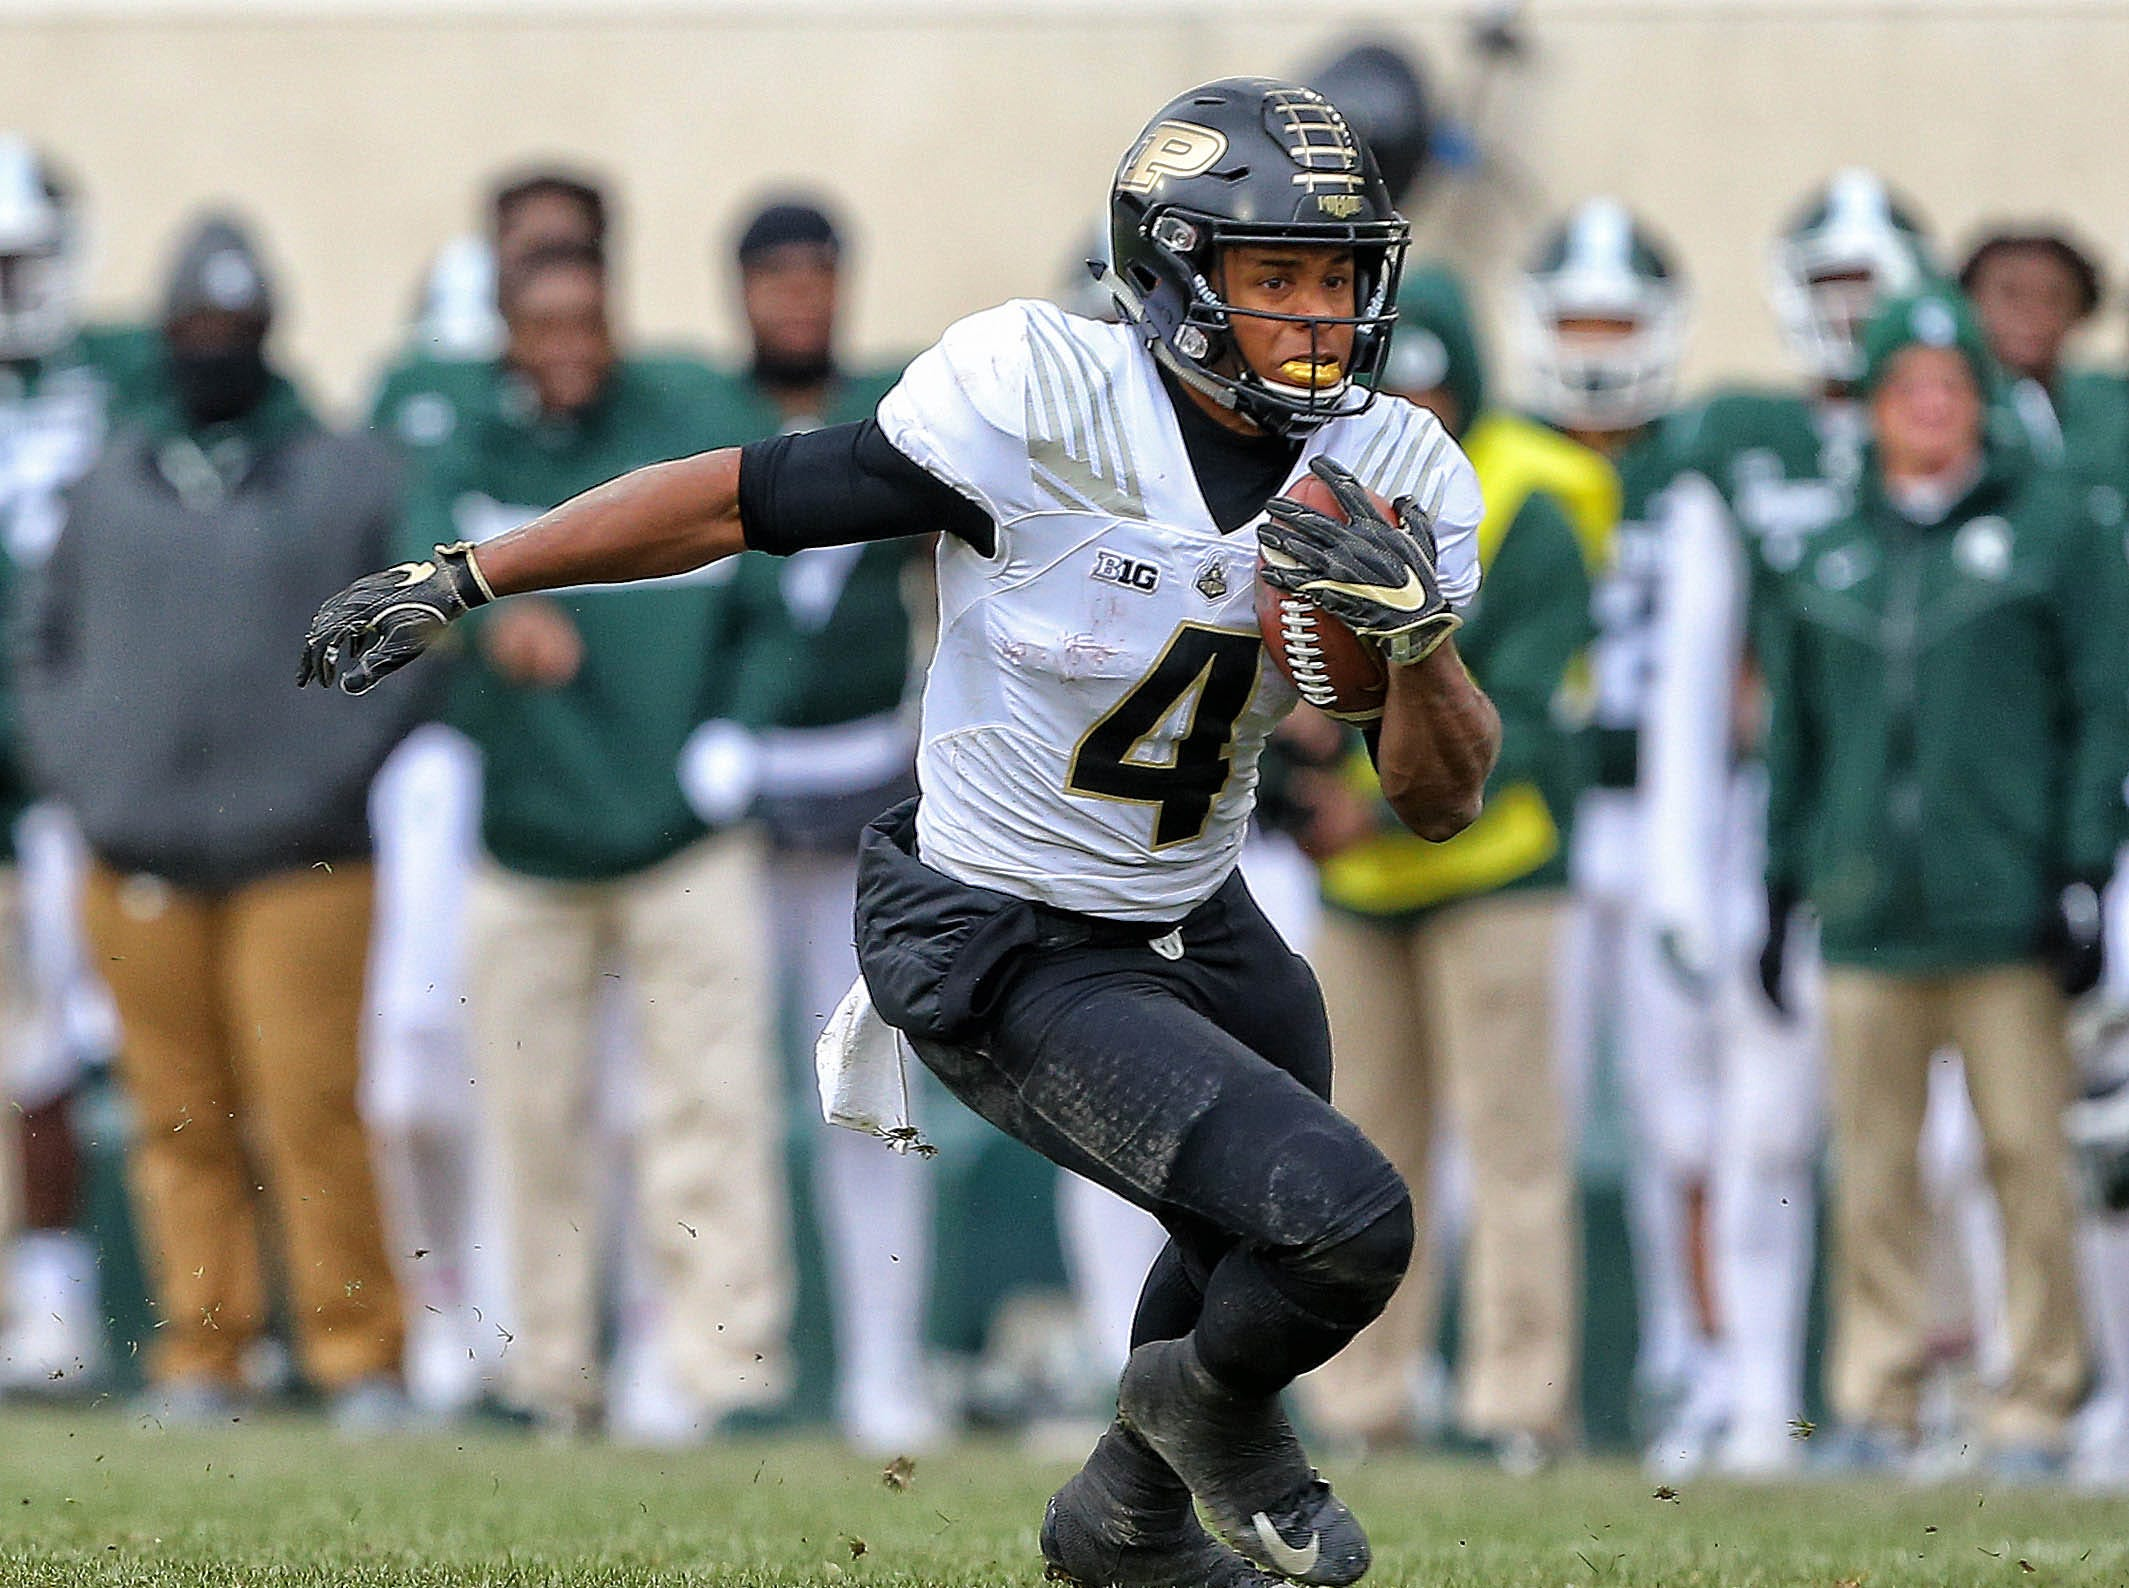 Oct 27, 2018; East Lansing, MI, USA; Purdue Boilermakers wide receiver Rondale Moore (4) runs the ball during the second half of a game against the Michigan State Spartans at Spartan Stadium. Mandatory Credit: Mike Carter-USA TODAY Sports